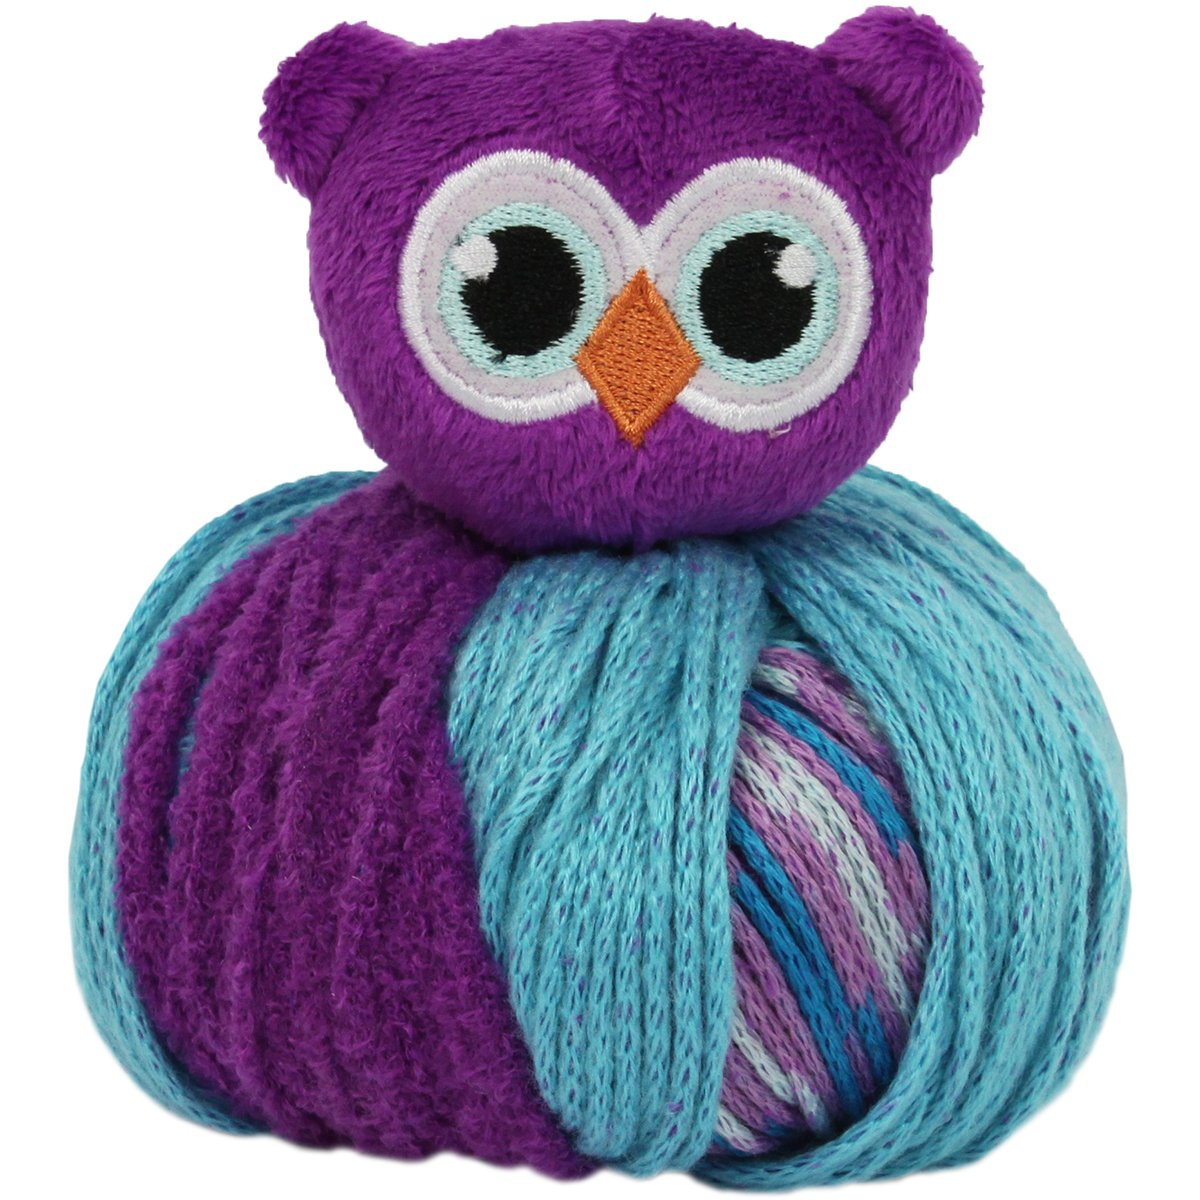 Knitted Owl Patterns - 1000 Free Patterns